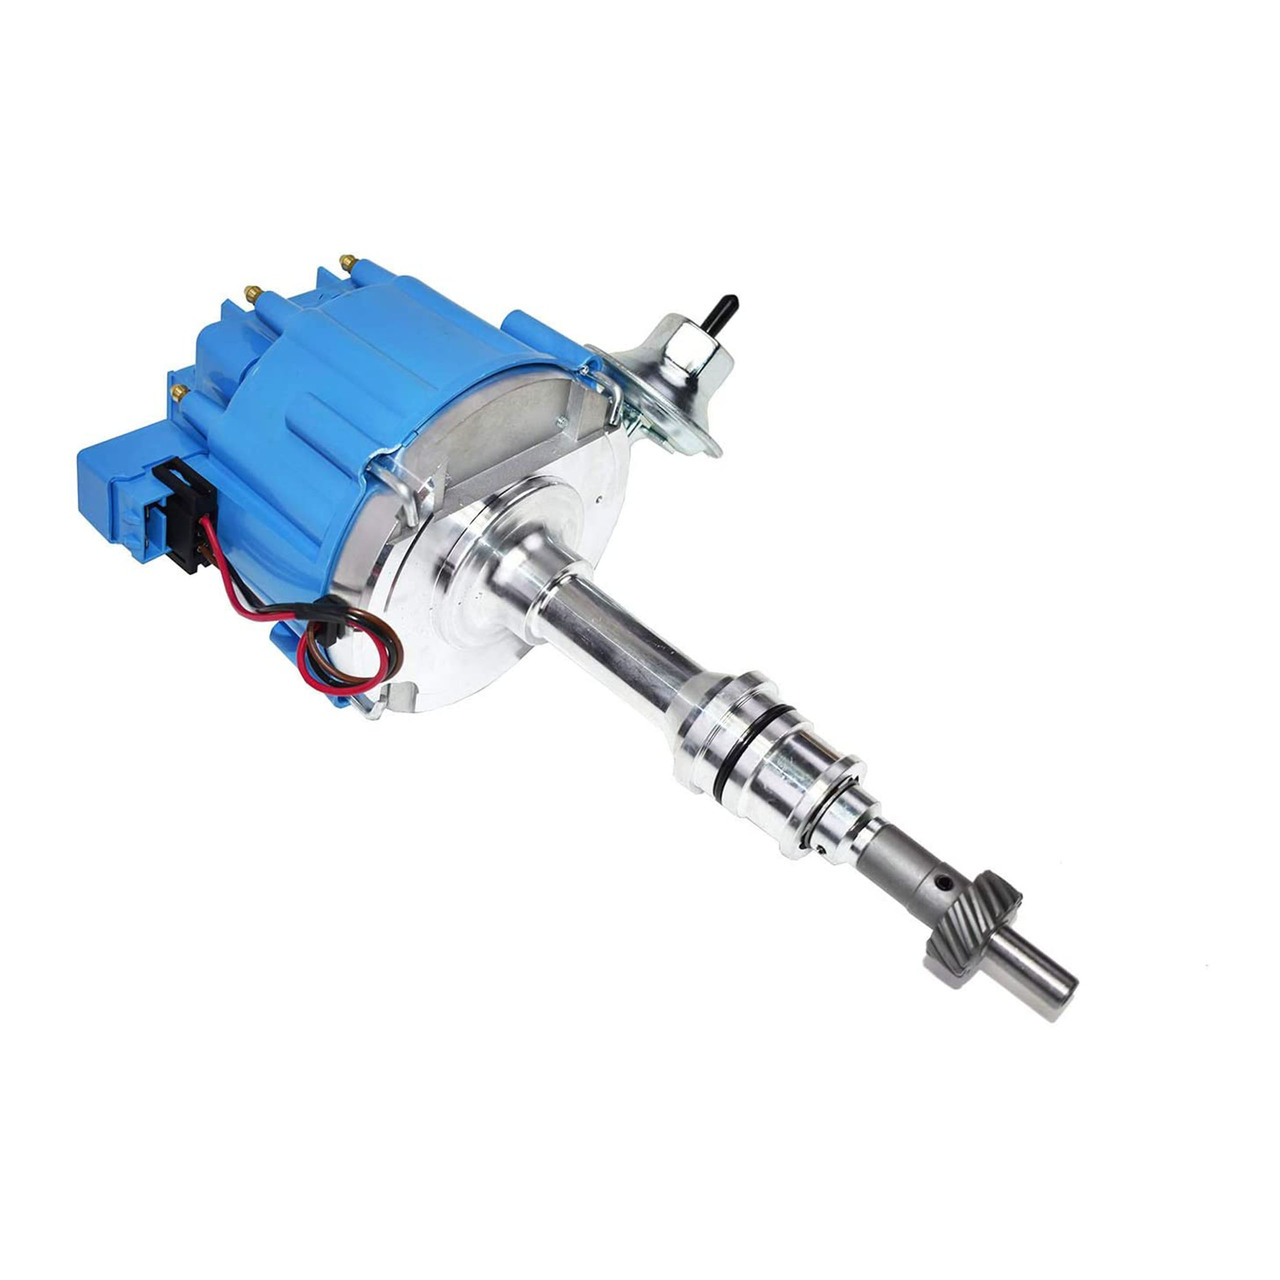 A-Team Performance SBF Ford Small Block 260 289 302 HEI Ignition Blue Cap Distributor w/ 65K Coil